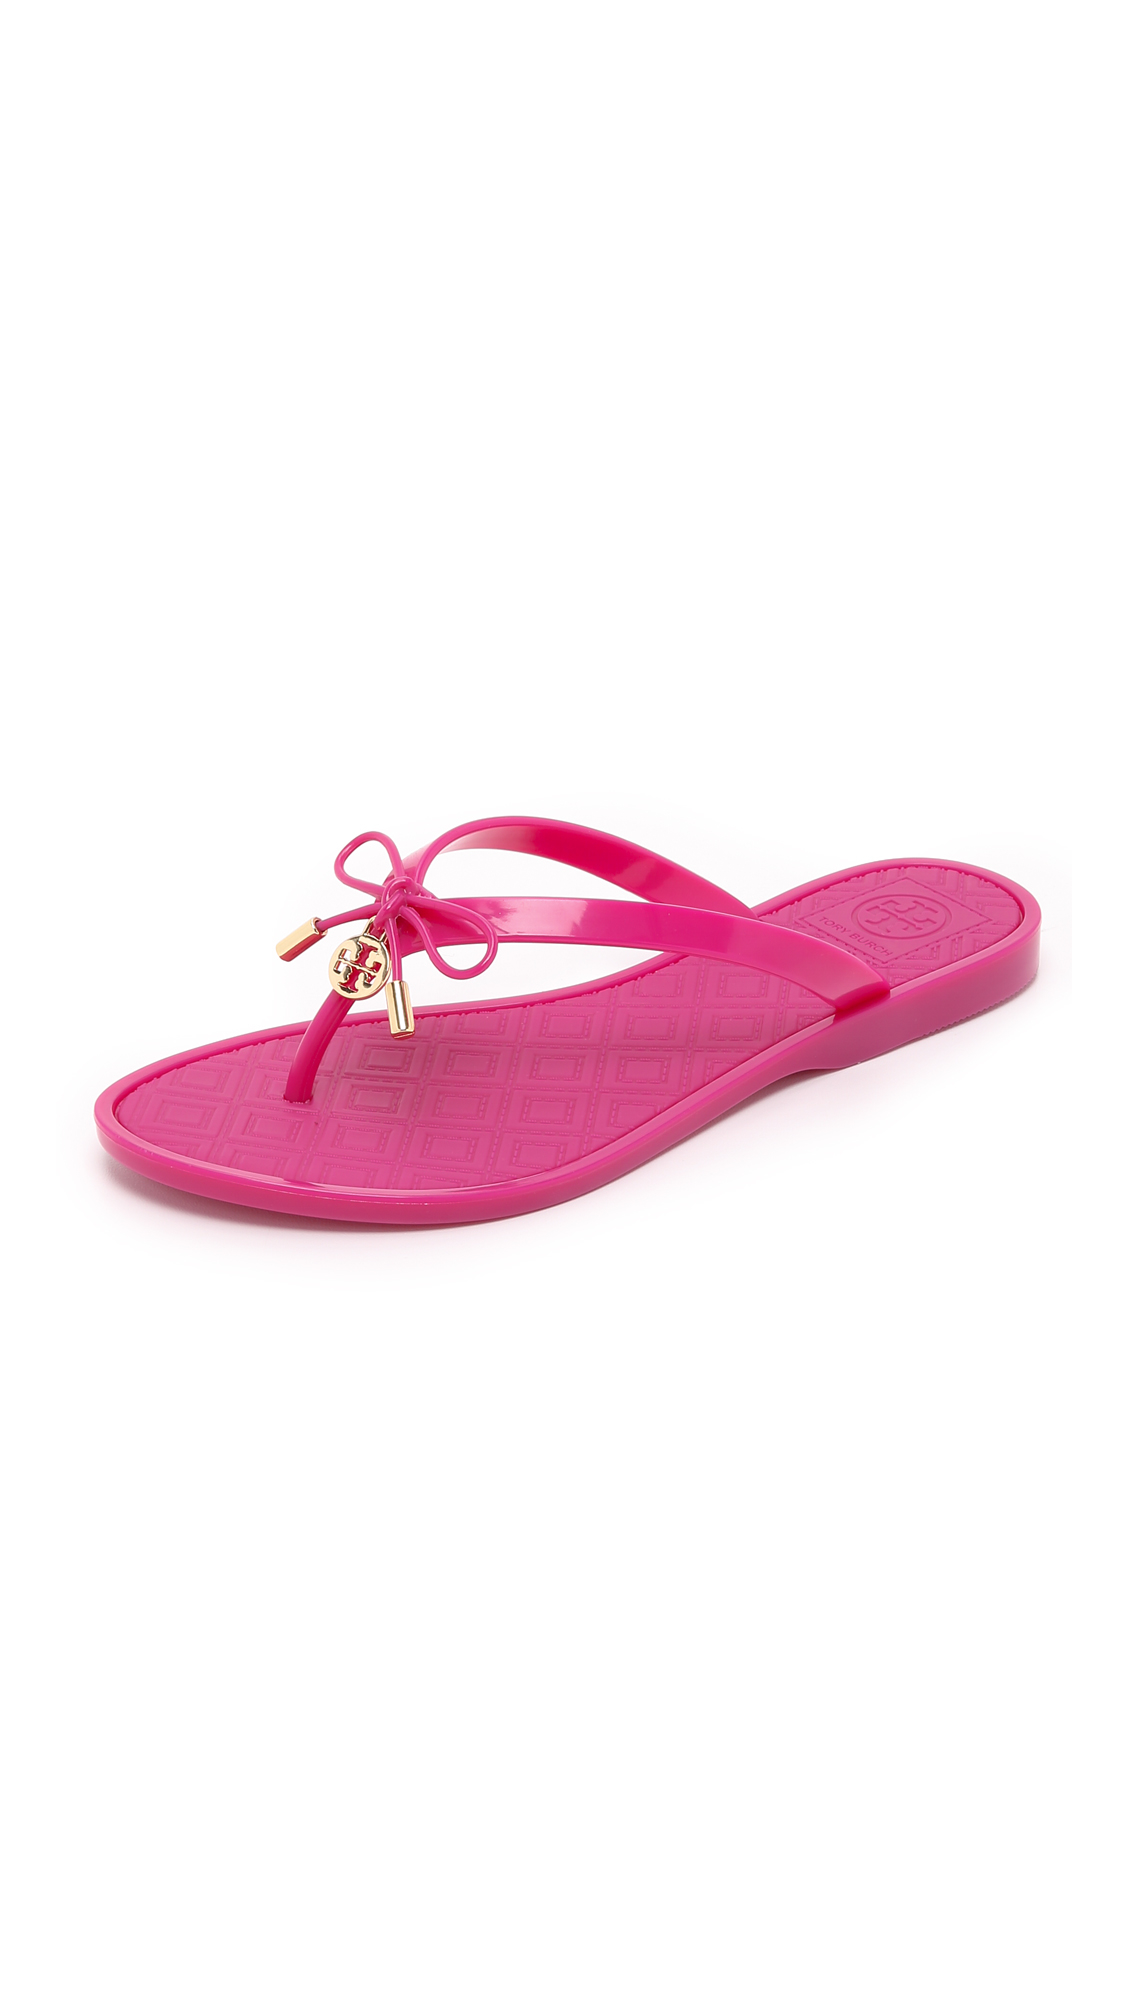 40a07238eab Lyst - Tory Burch Jelly Bow Thong Sandals in Pink